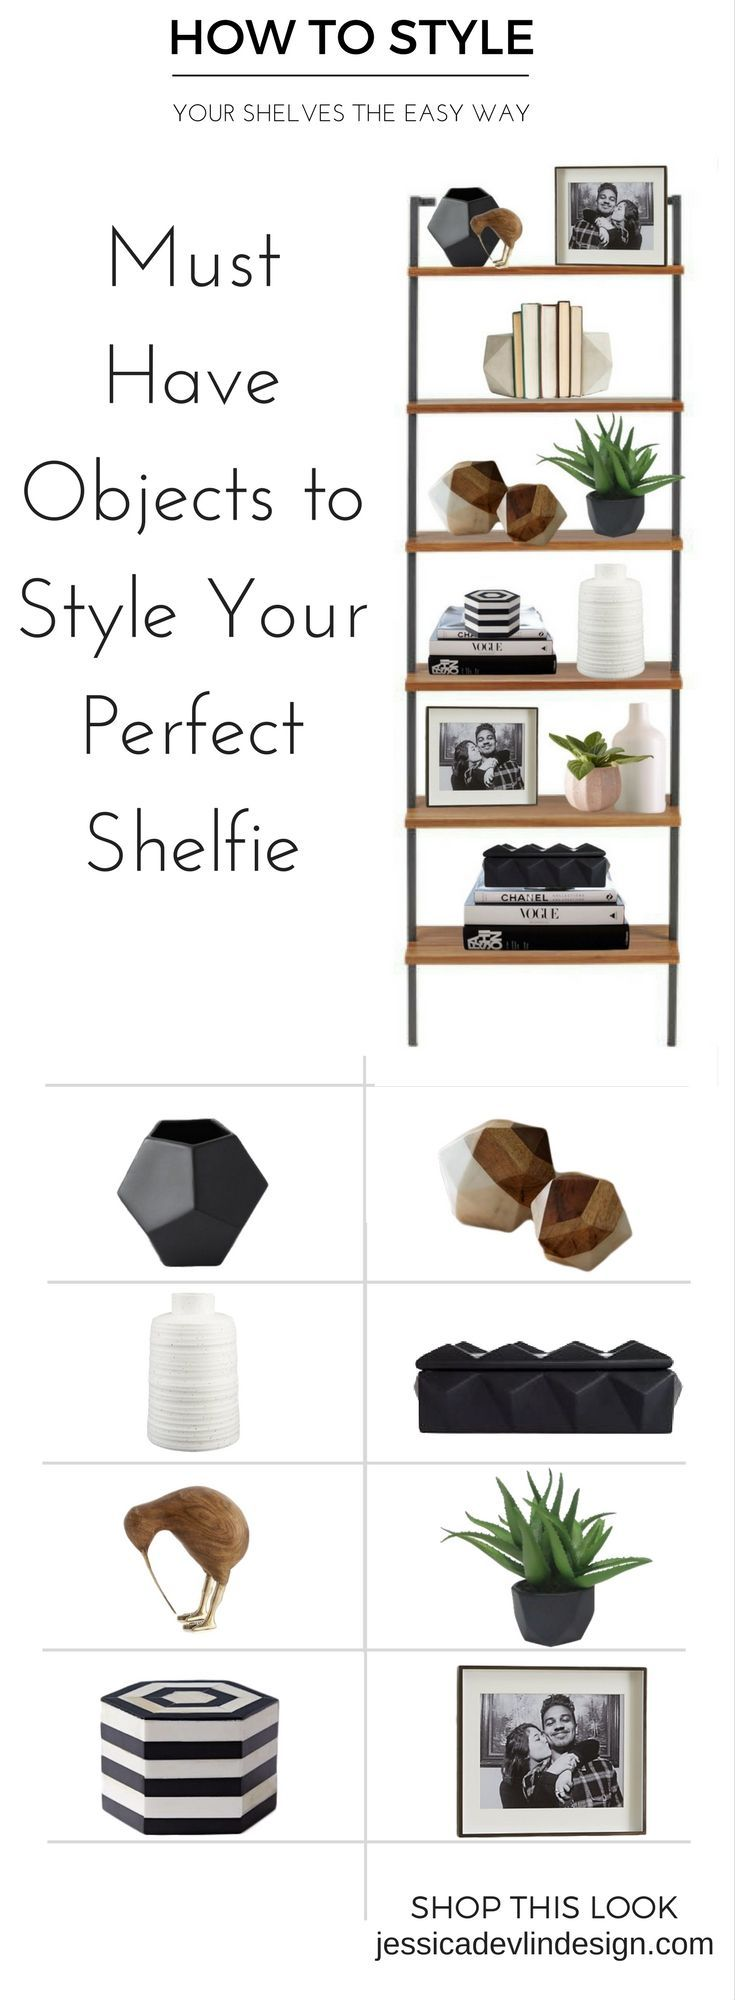 Check this site out for amazing bookshelf styling ideas. This post is great for bookshelf styling in your living room. Give your bookshelf a makeover!